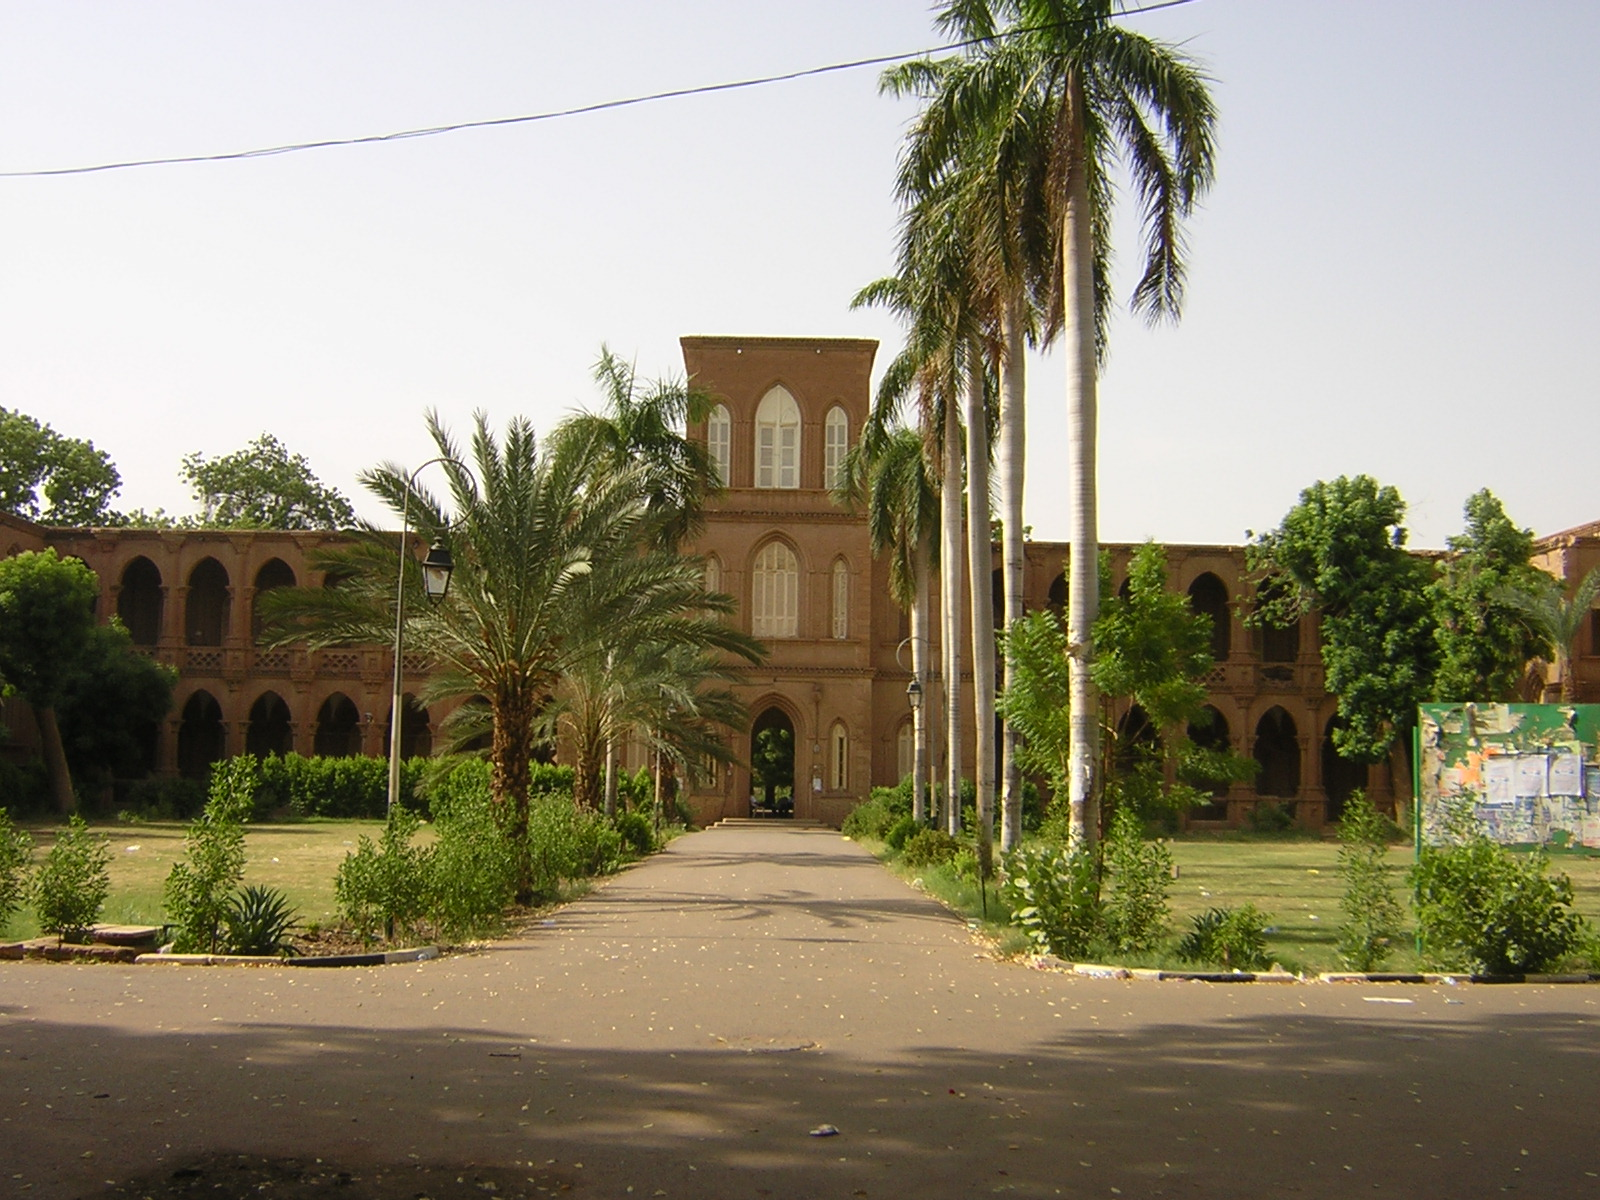 Faculty Of Architecture Design And Planning Himgiri Zee University